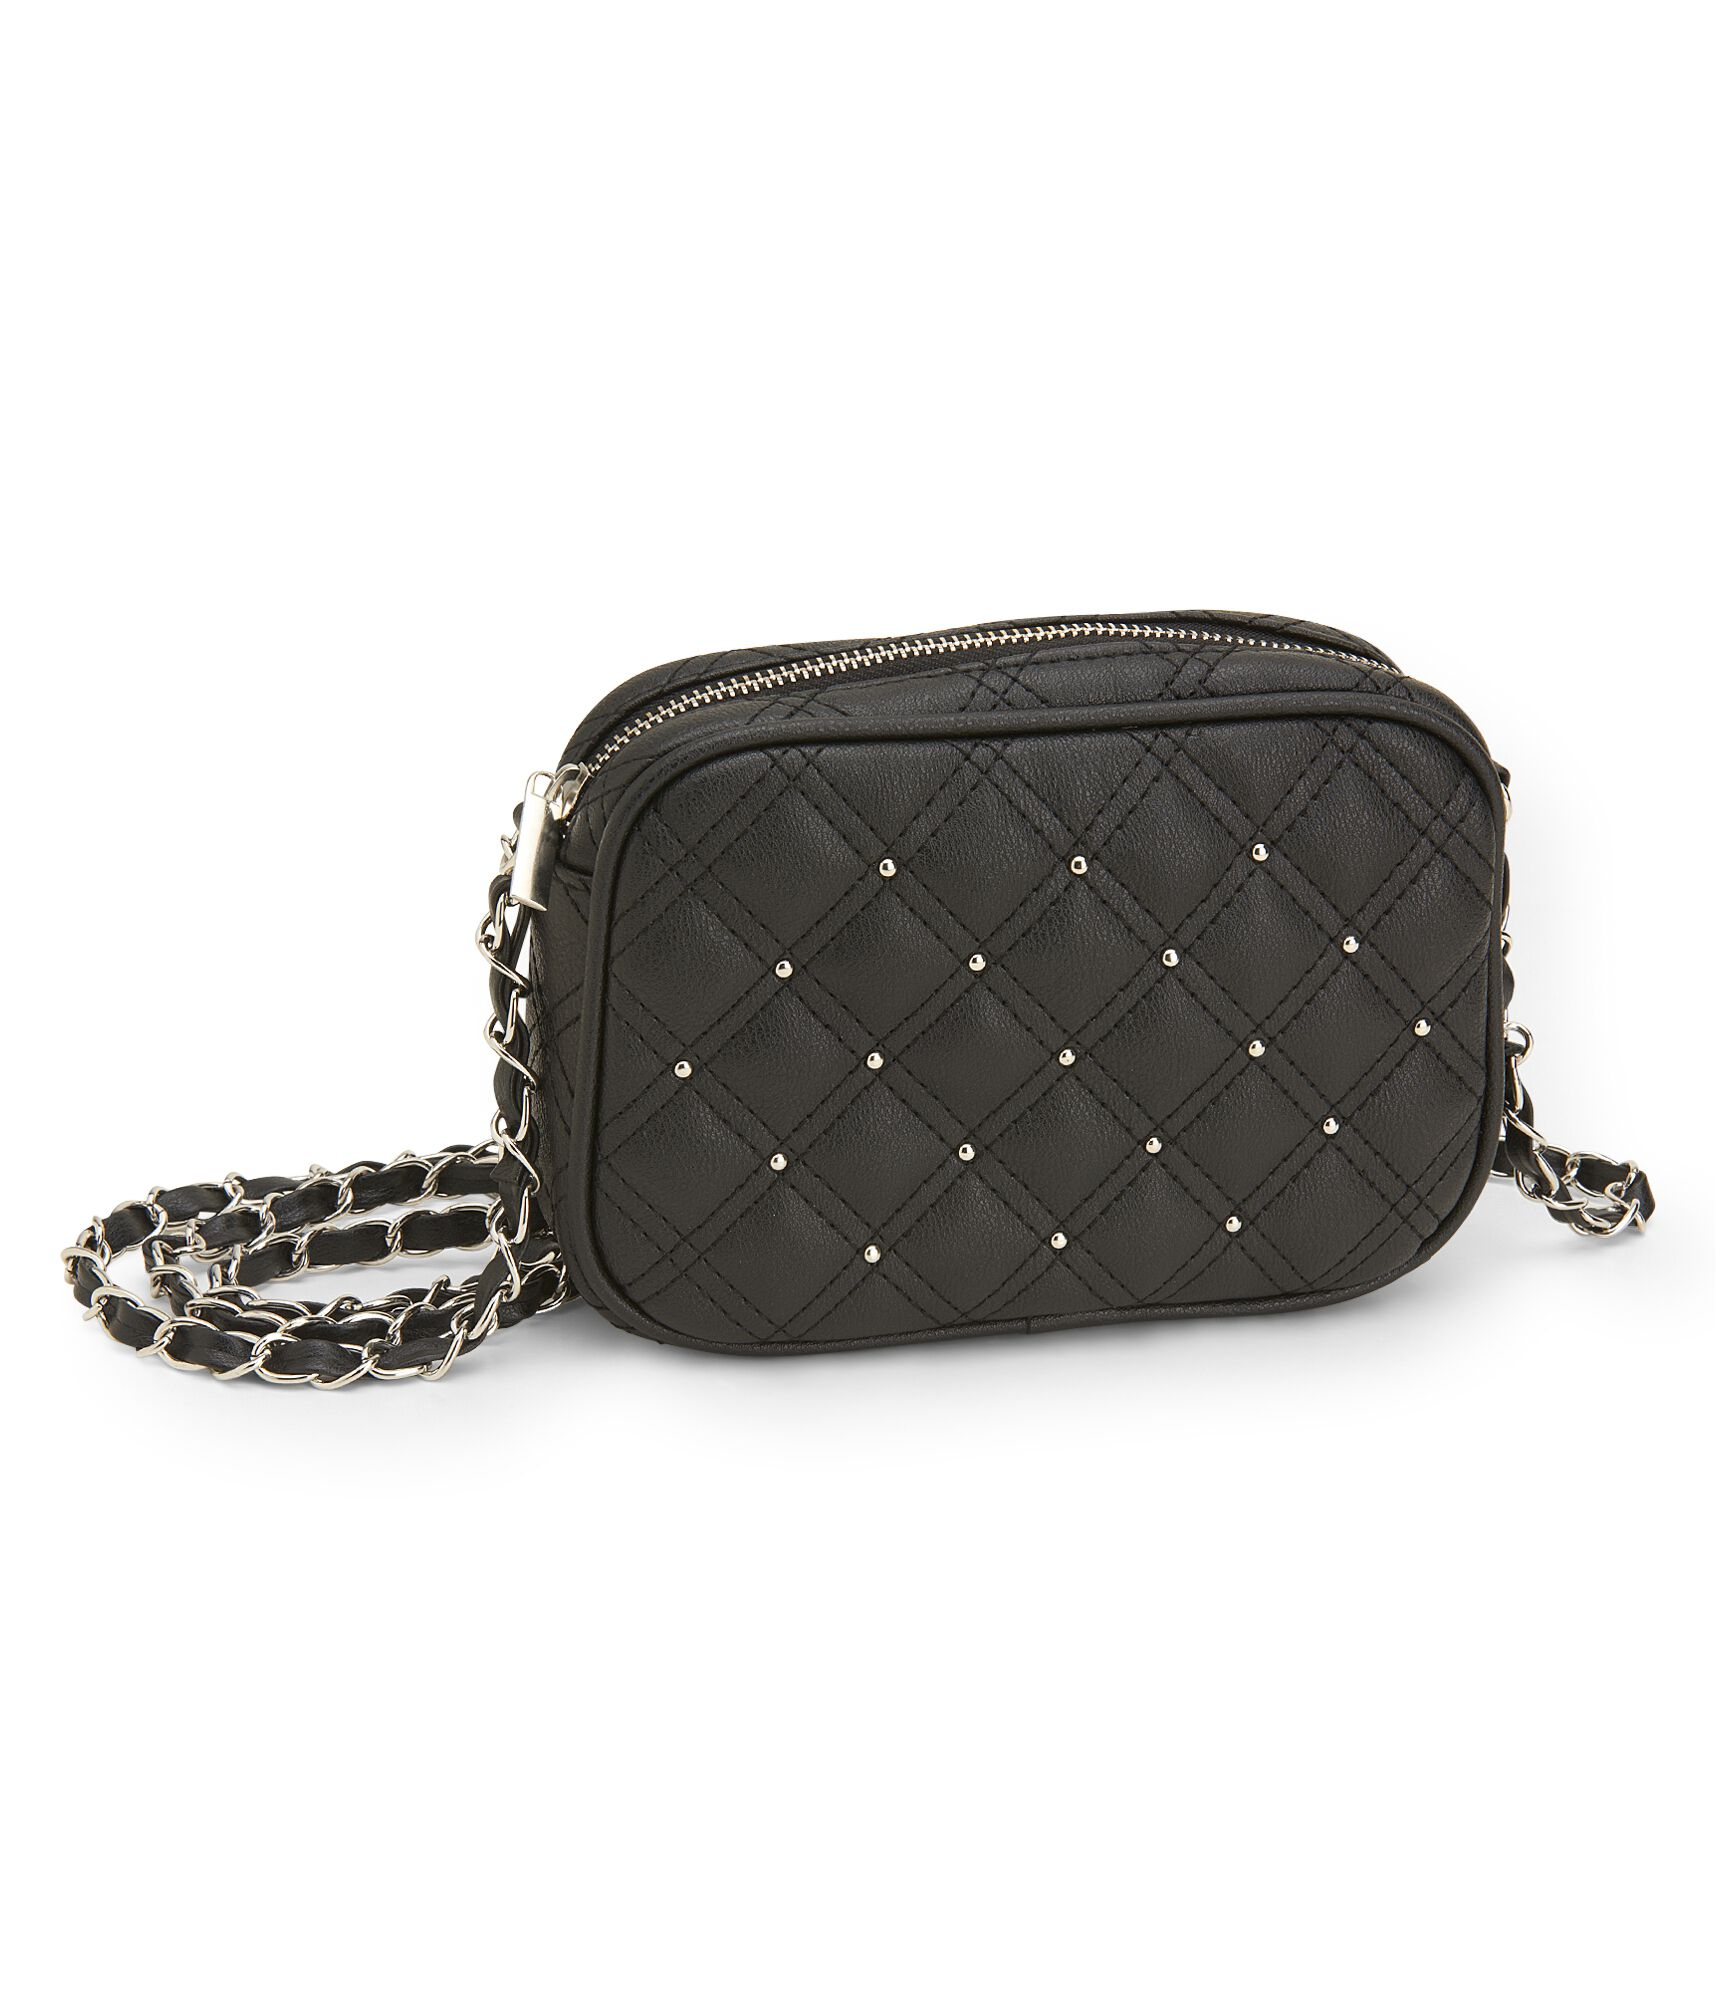 Quilted Crossbody Bag | Aeropostale : quilted crossbody - Adamdwight.com